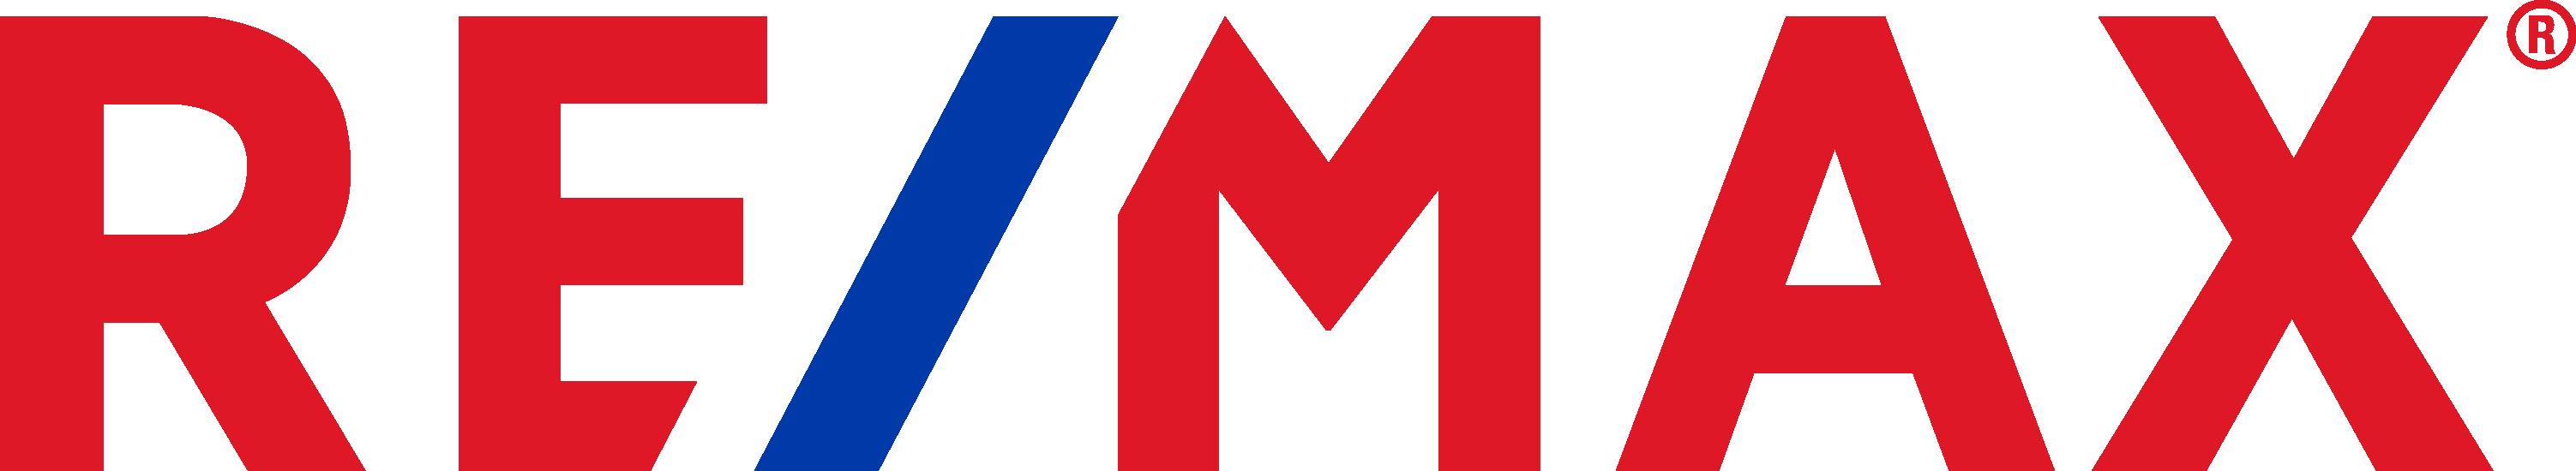 Remax Logo (Balloon)